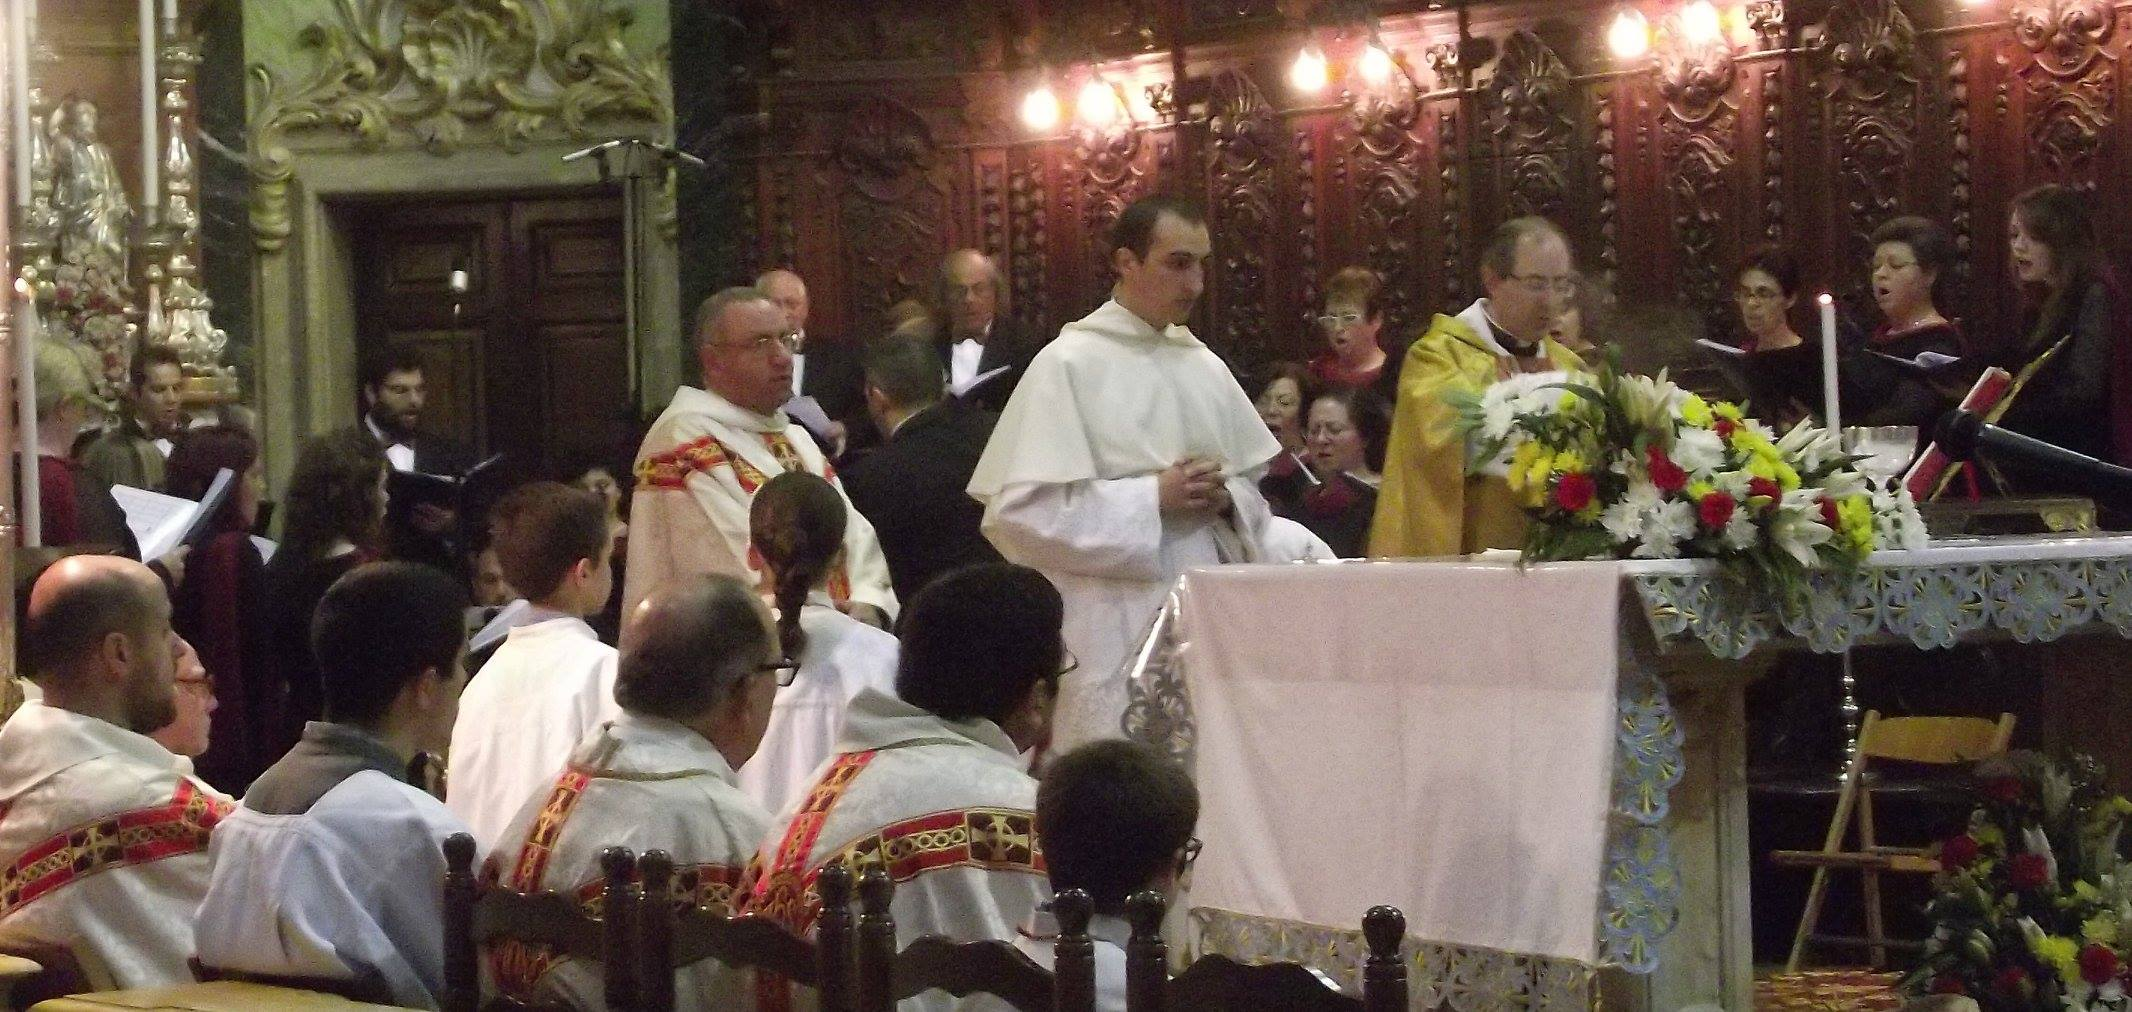 20th Anniversary Thanksgiving Mass: St. Dominic's Church, Rabat - 3 May 2014